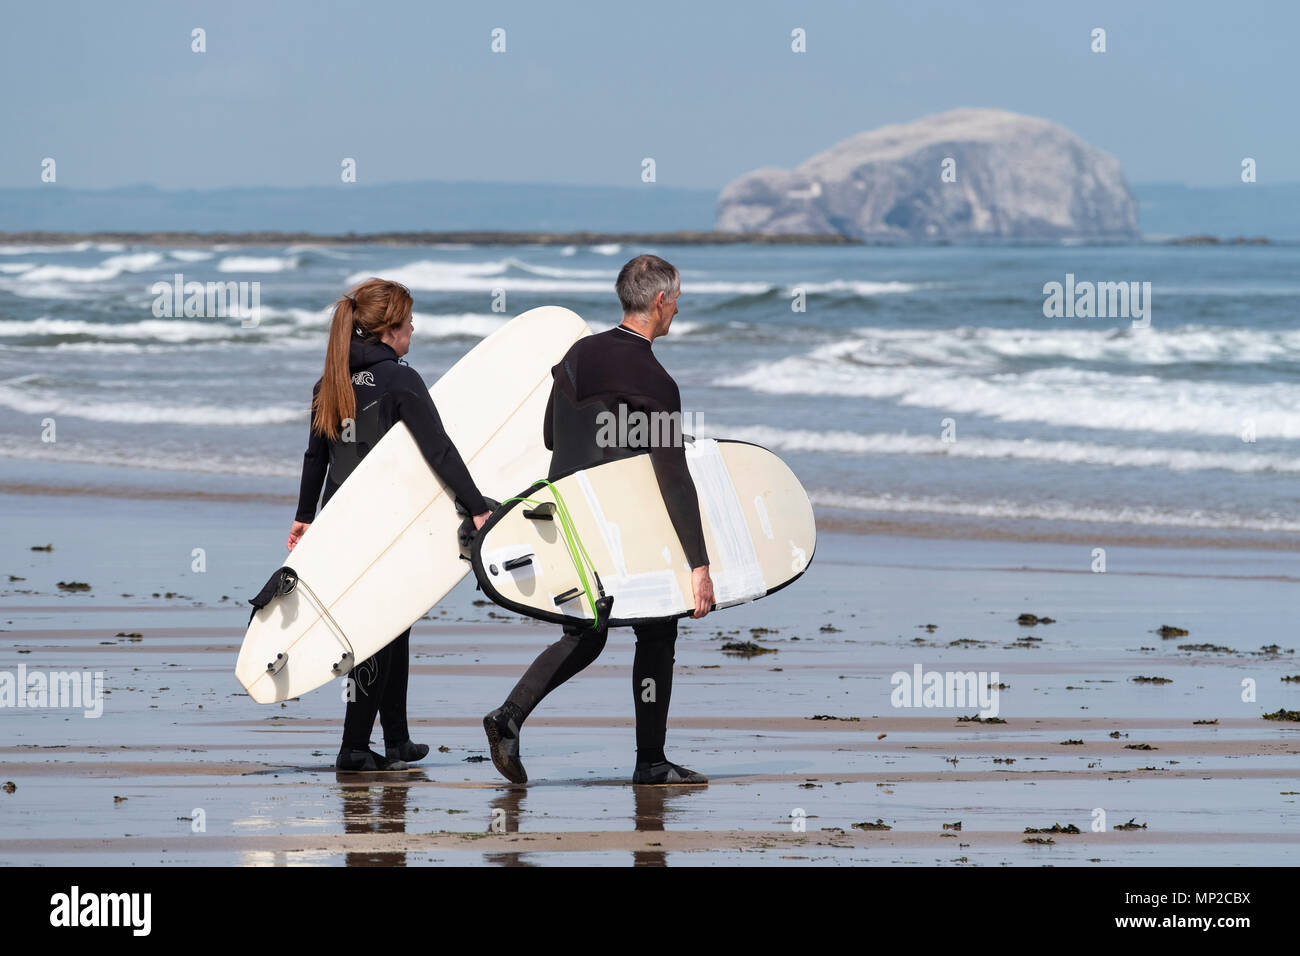 Two  surfers carry surfboards to sea at Belhaven Beach, East Lothian, Scotland, United Kingdom - Stock Image